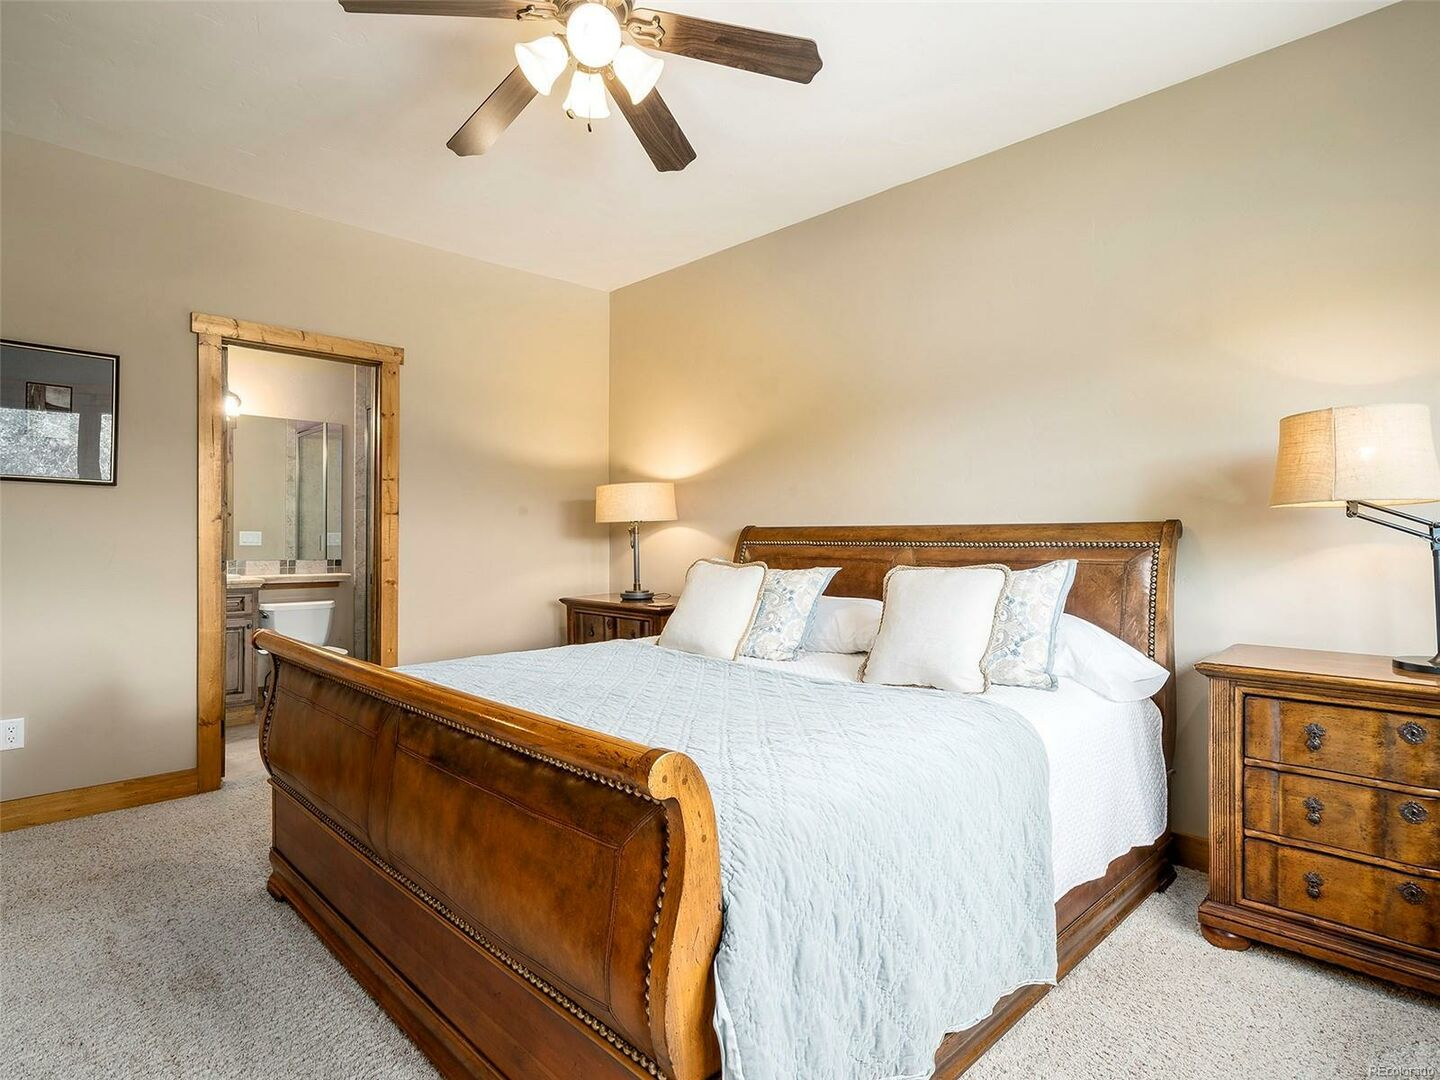 Bedroom with Bathroom, Large Bed, Nightstands, and Lamps.